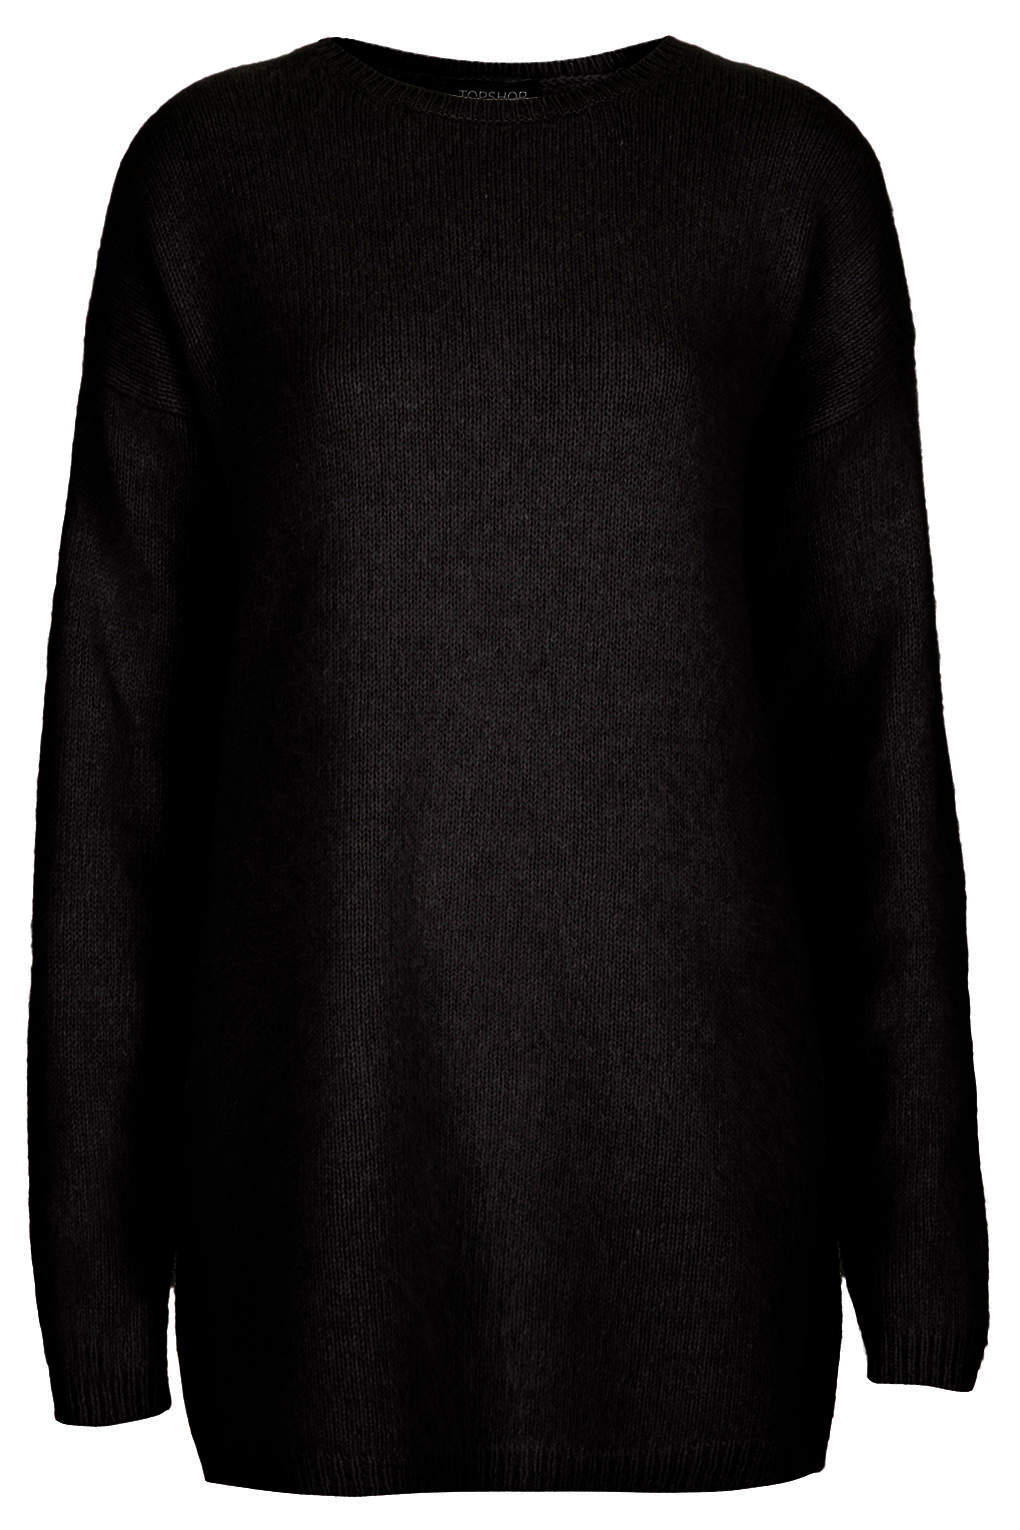 Black V Neck Sweater Women S